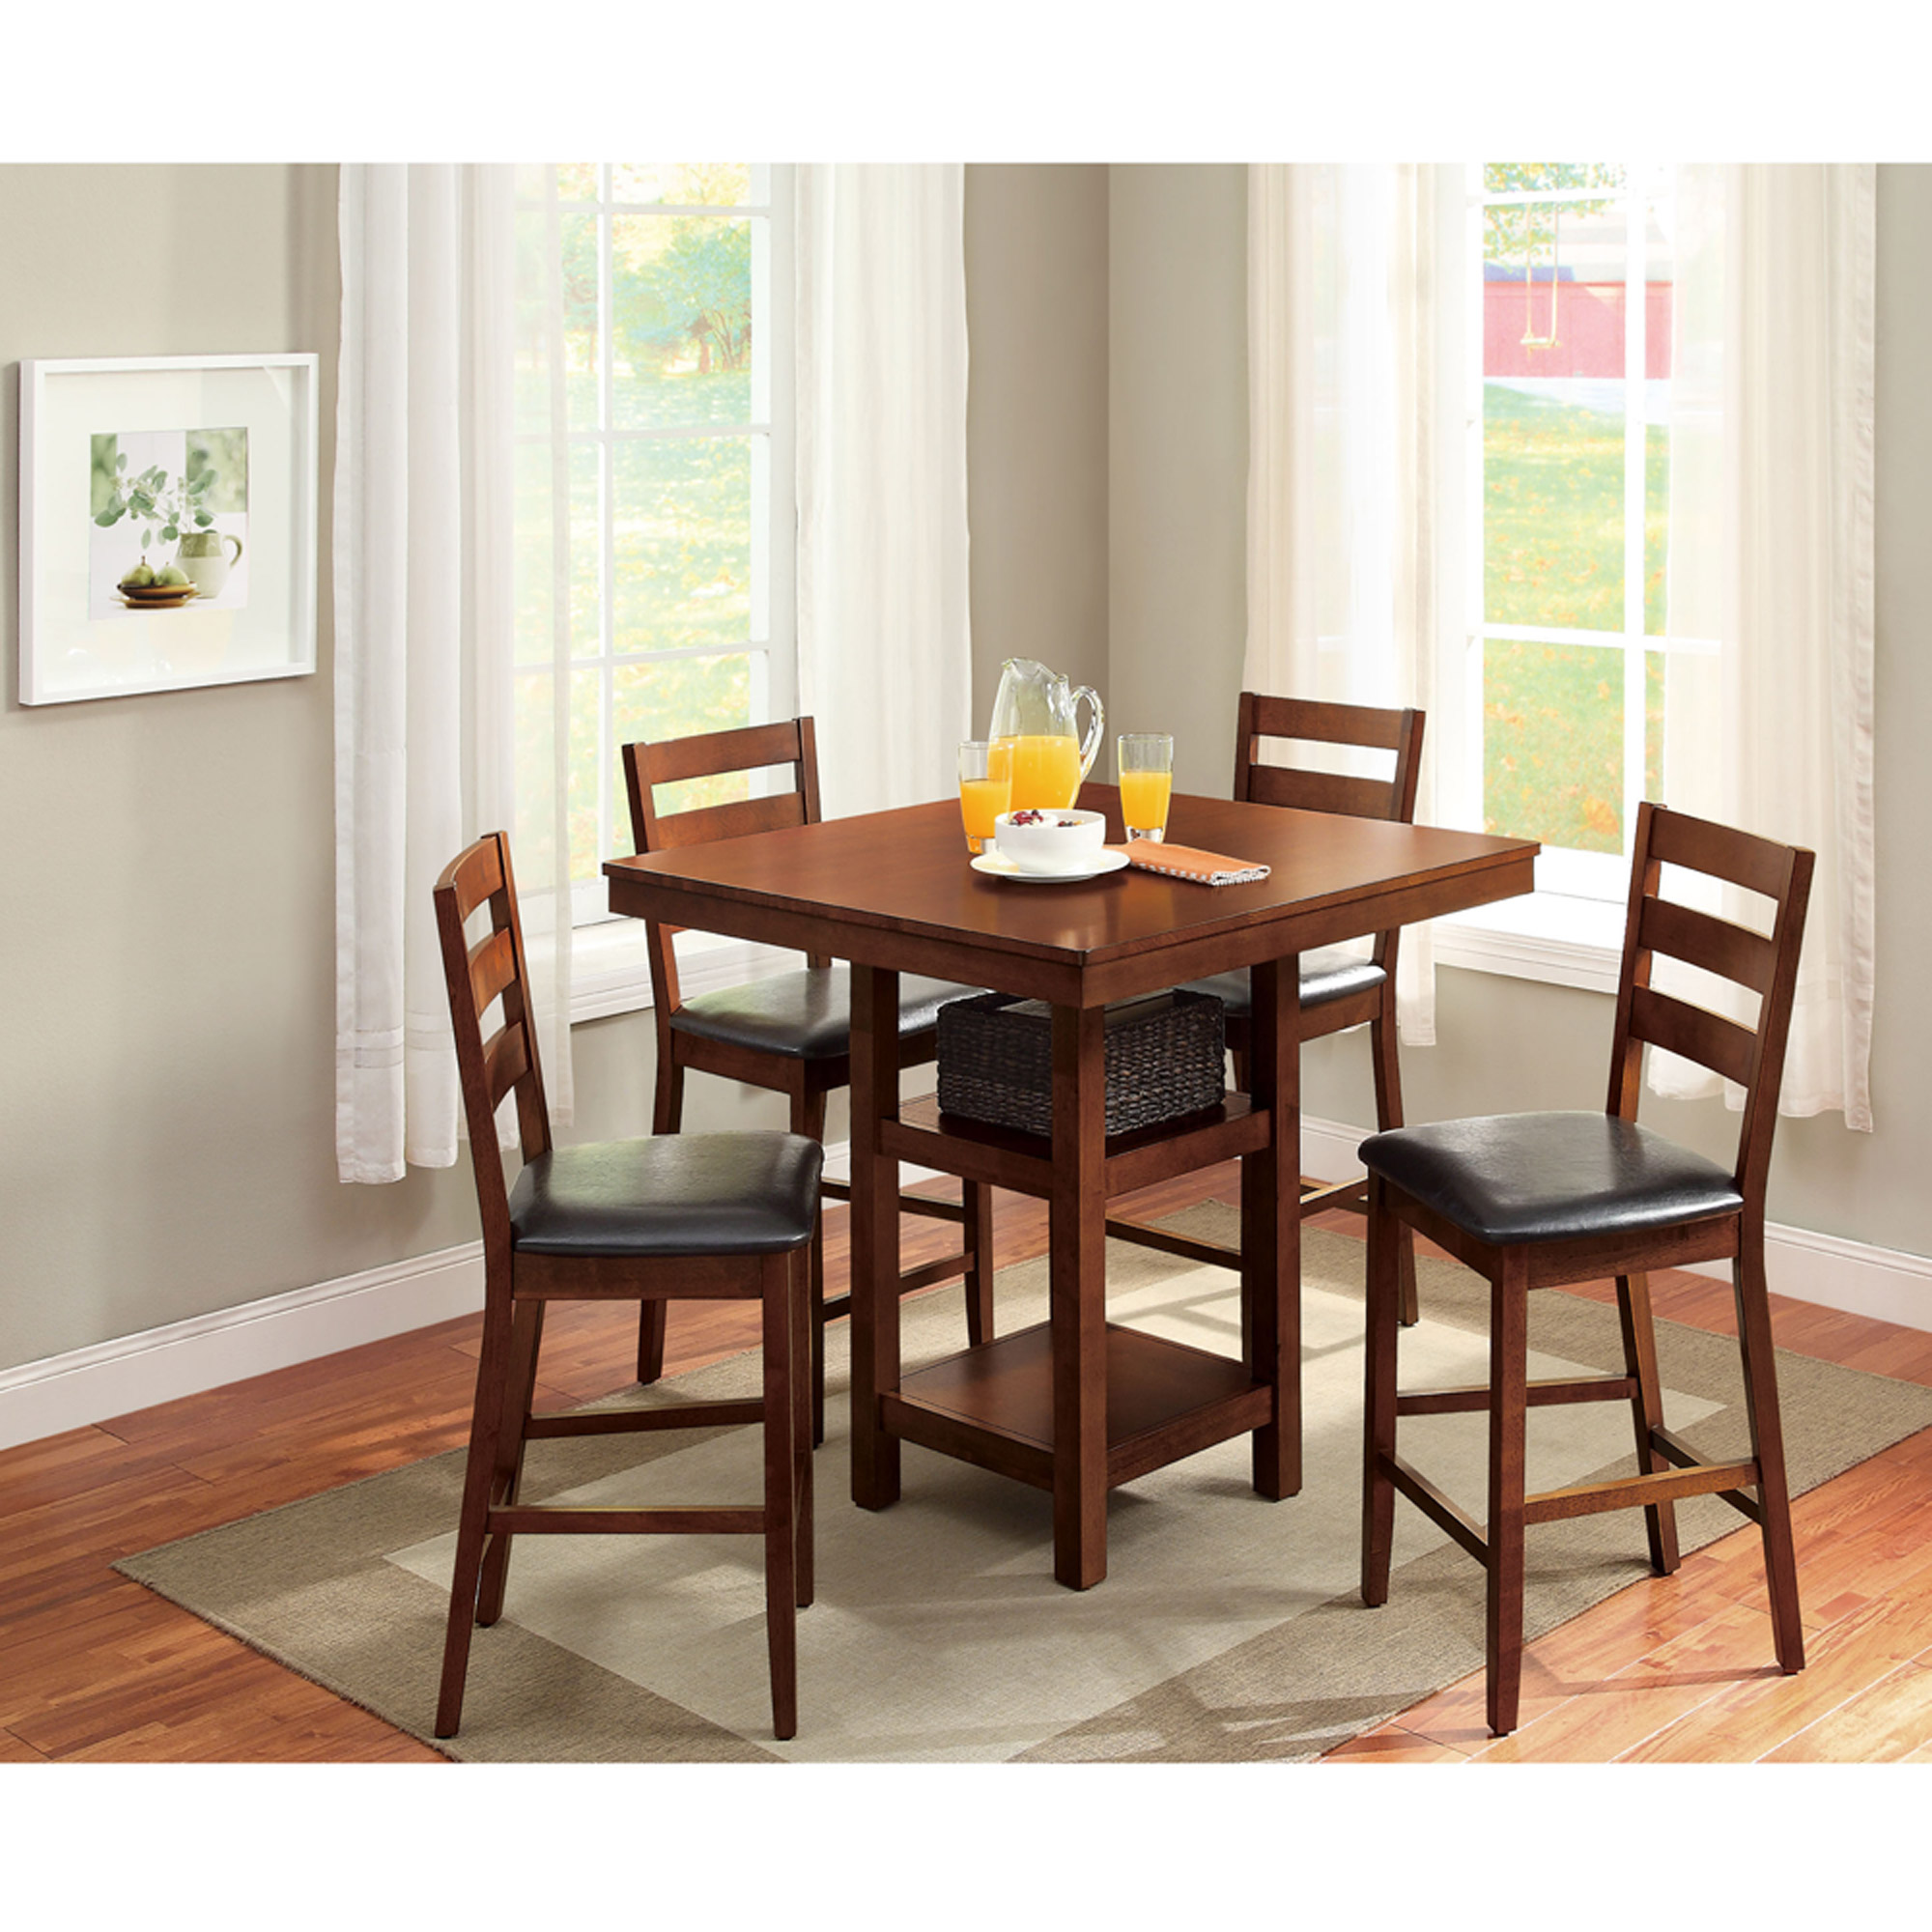 Better Homes & Gardens Dalton Park 5-Piece Counter Height Dining Set